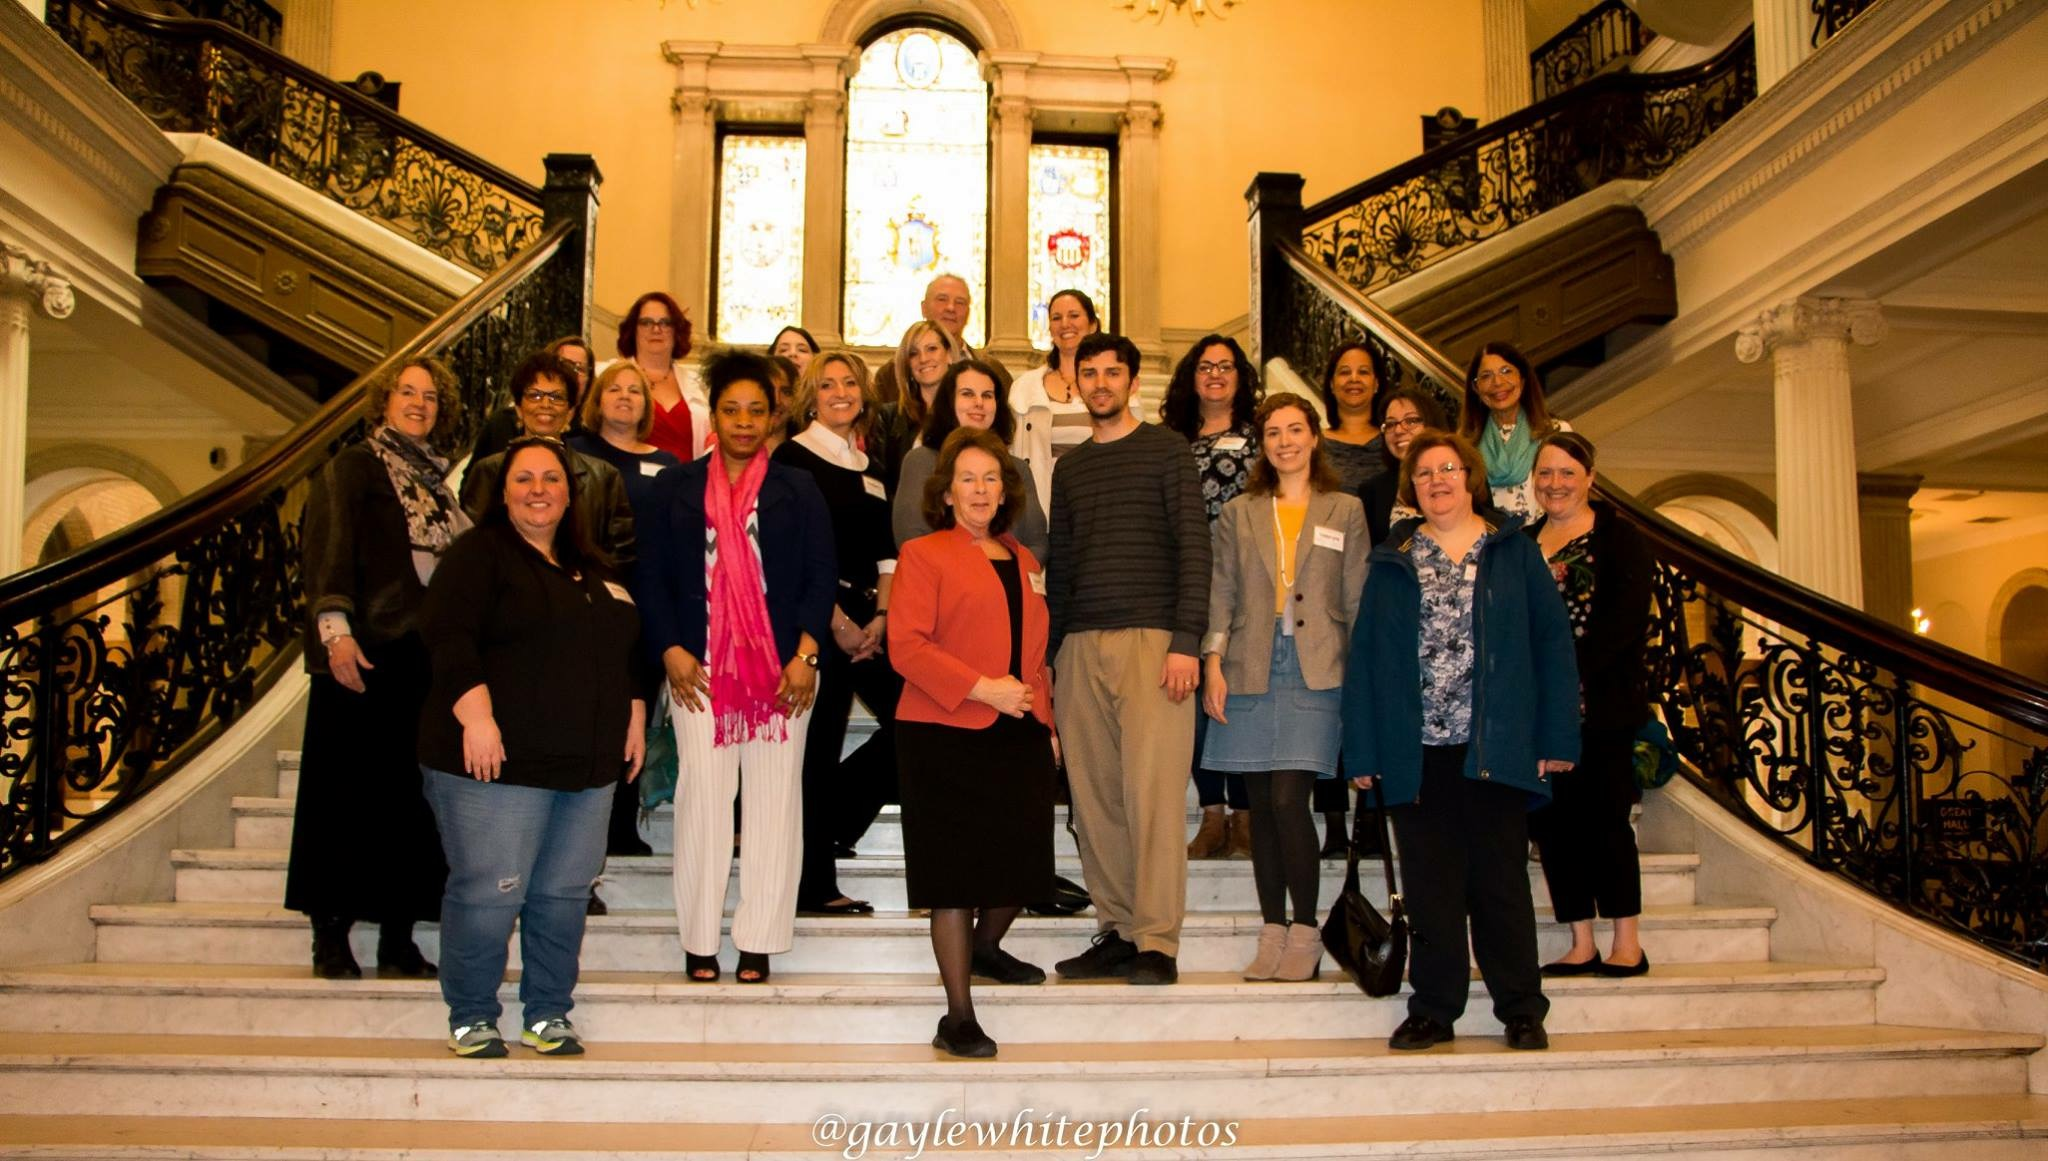 Photo: Members of Massachusetts Families Organizing for Change (MFOFC) in the state Capitol.